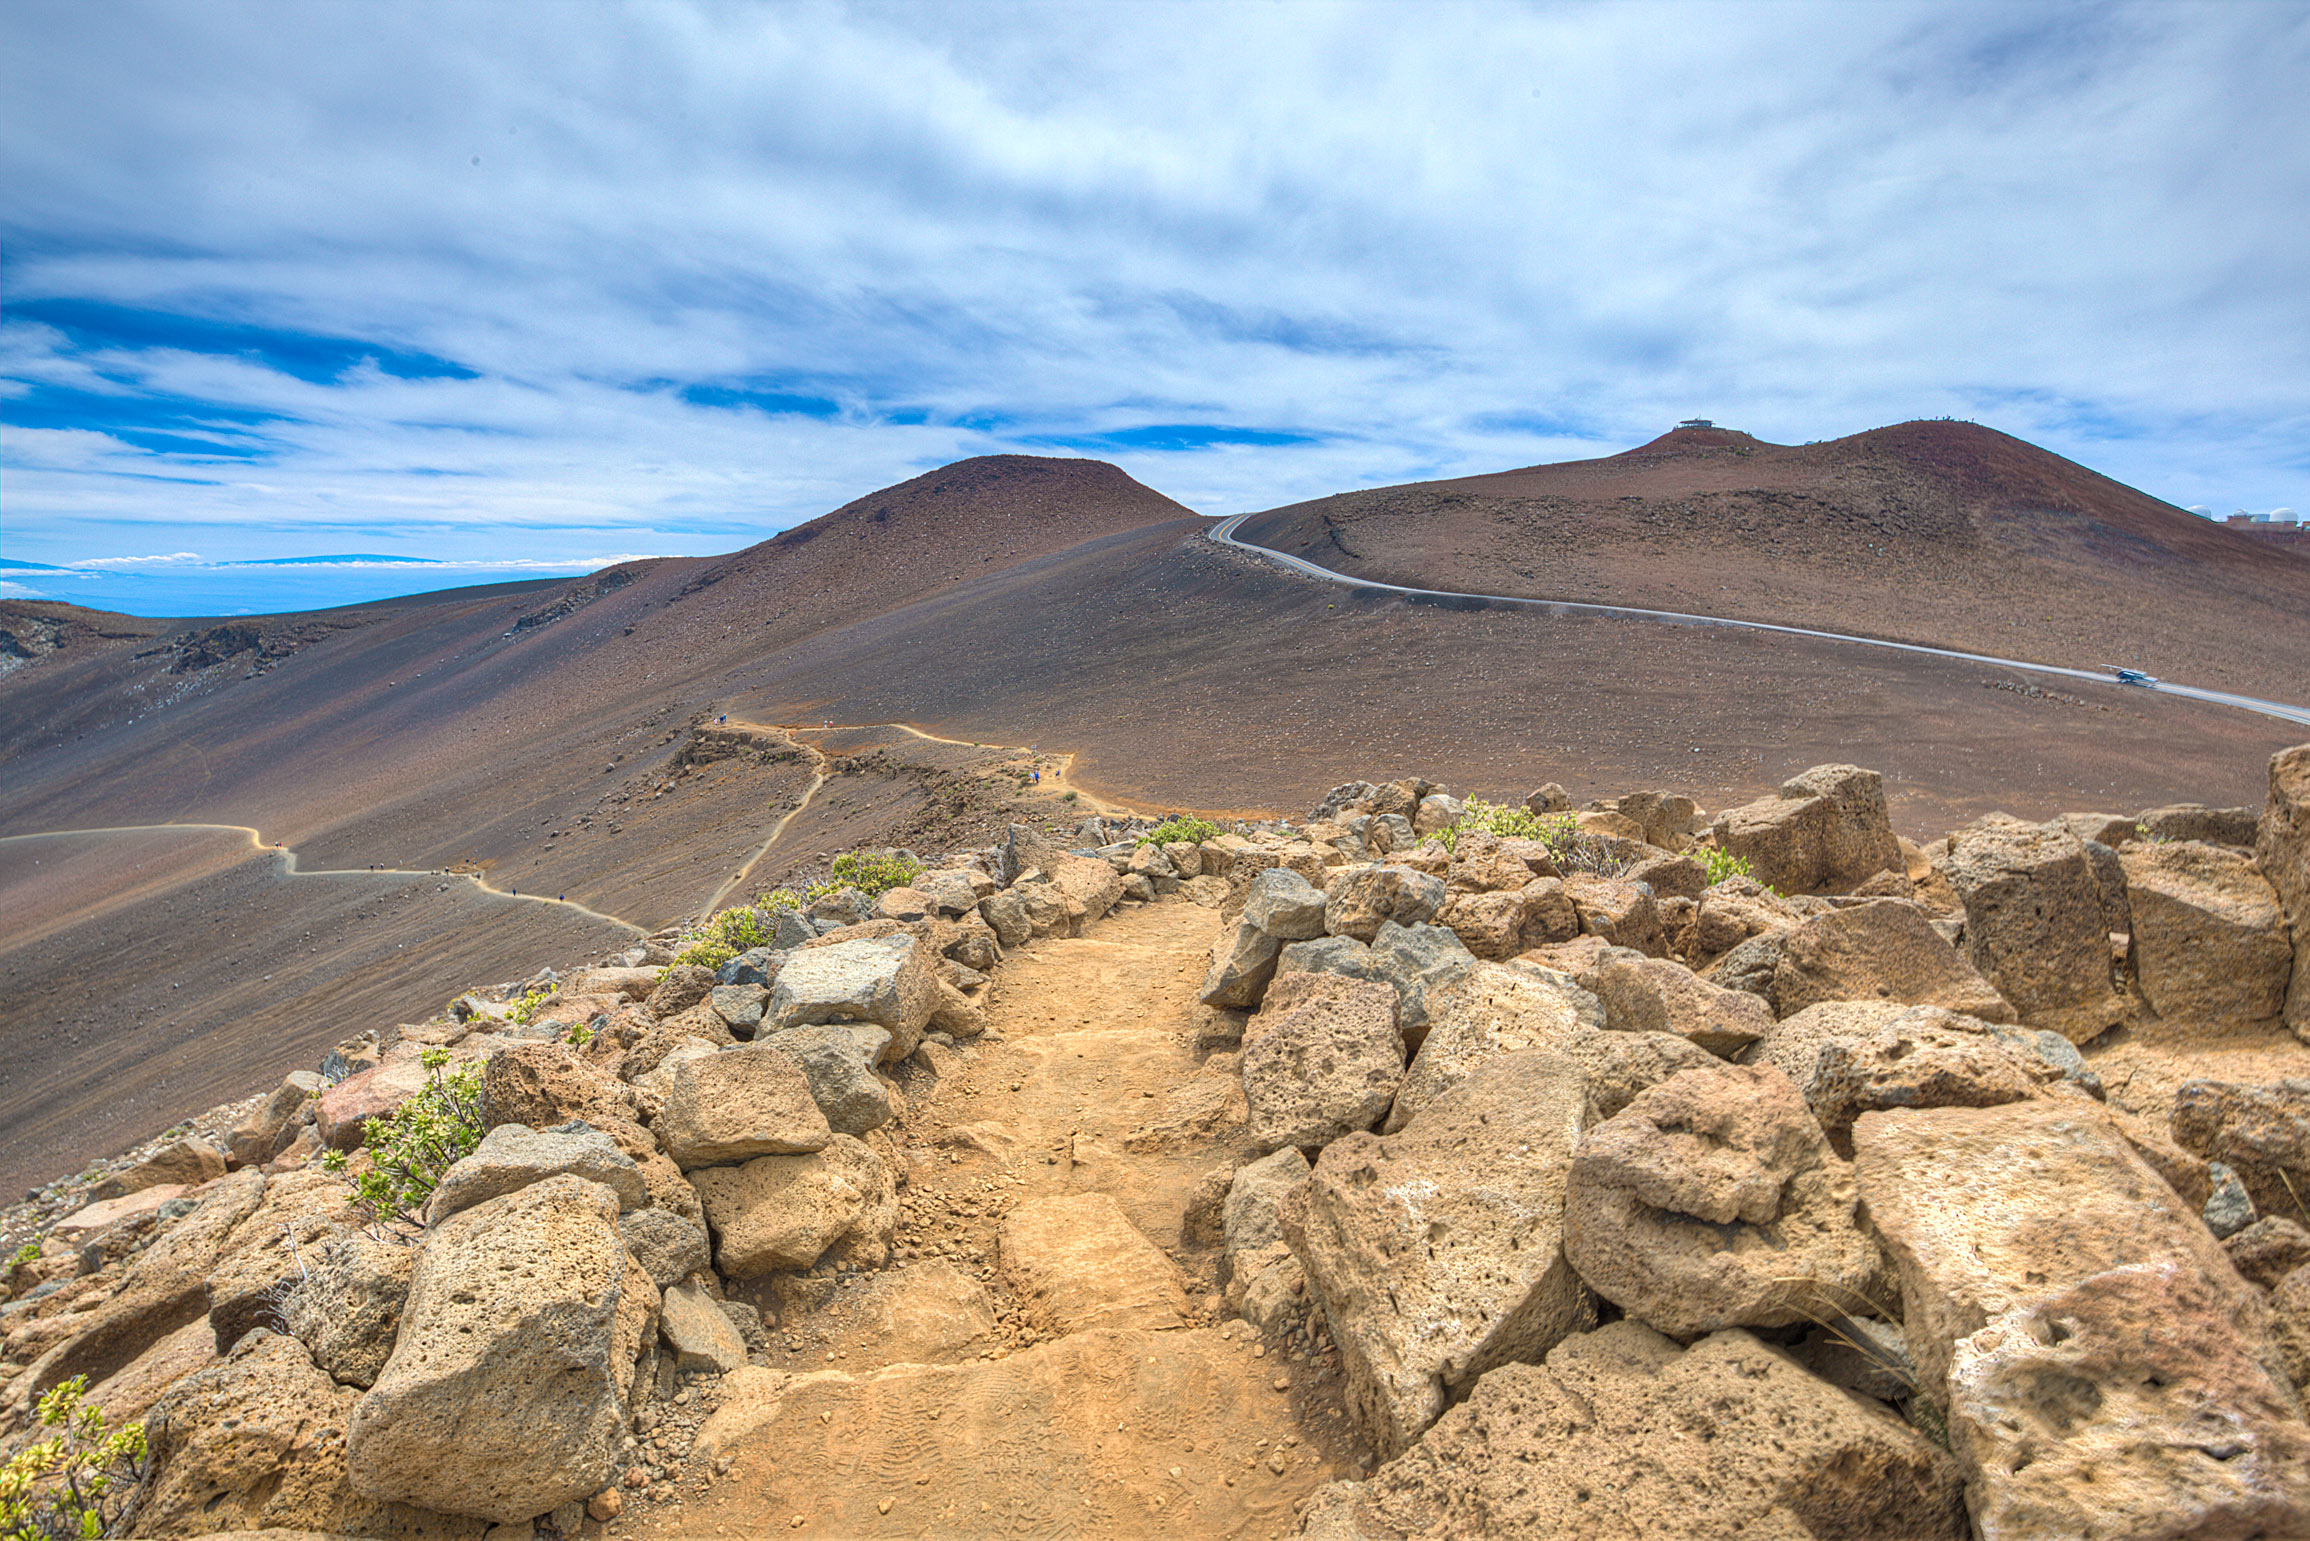 Hiking down to the Haleakala Crater